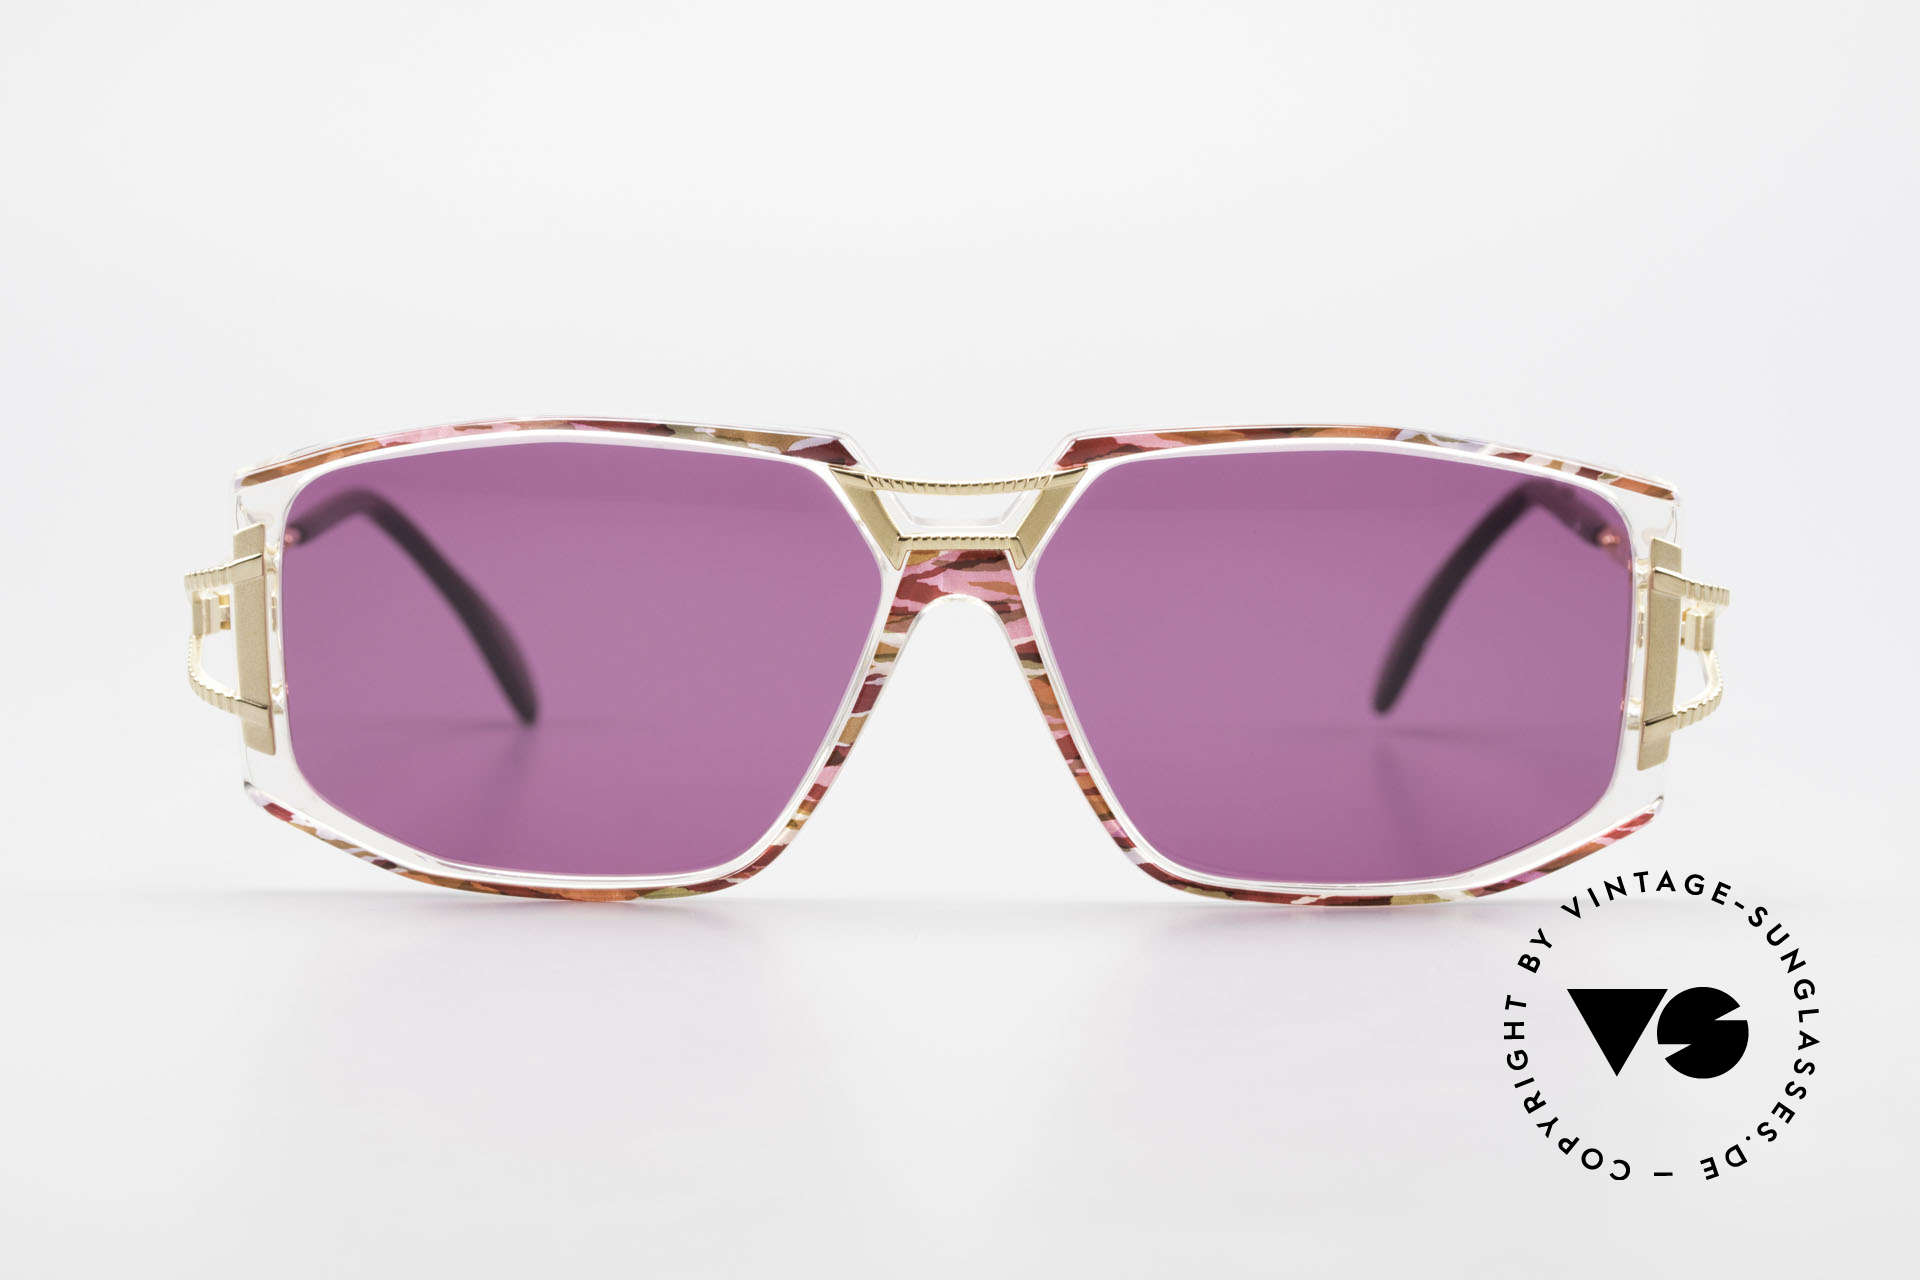 Cazal 362 90's Sunglasses Ladies Cazal, exciting ornamental piece on bridge and temple hinges, Made for Women